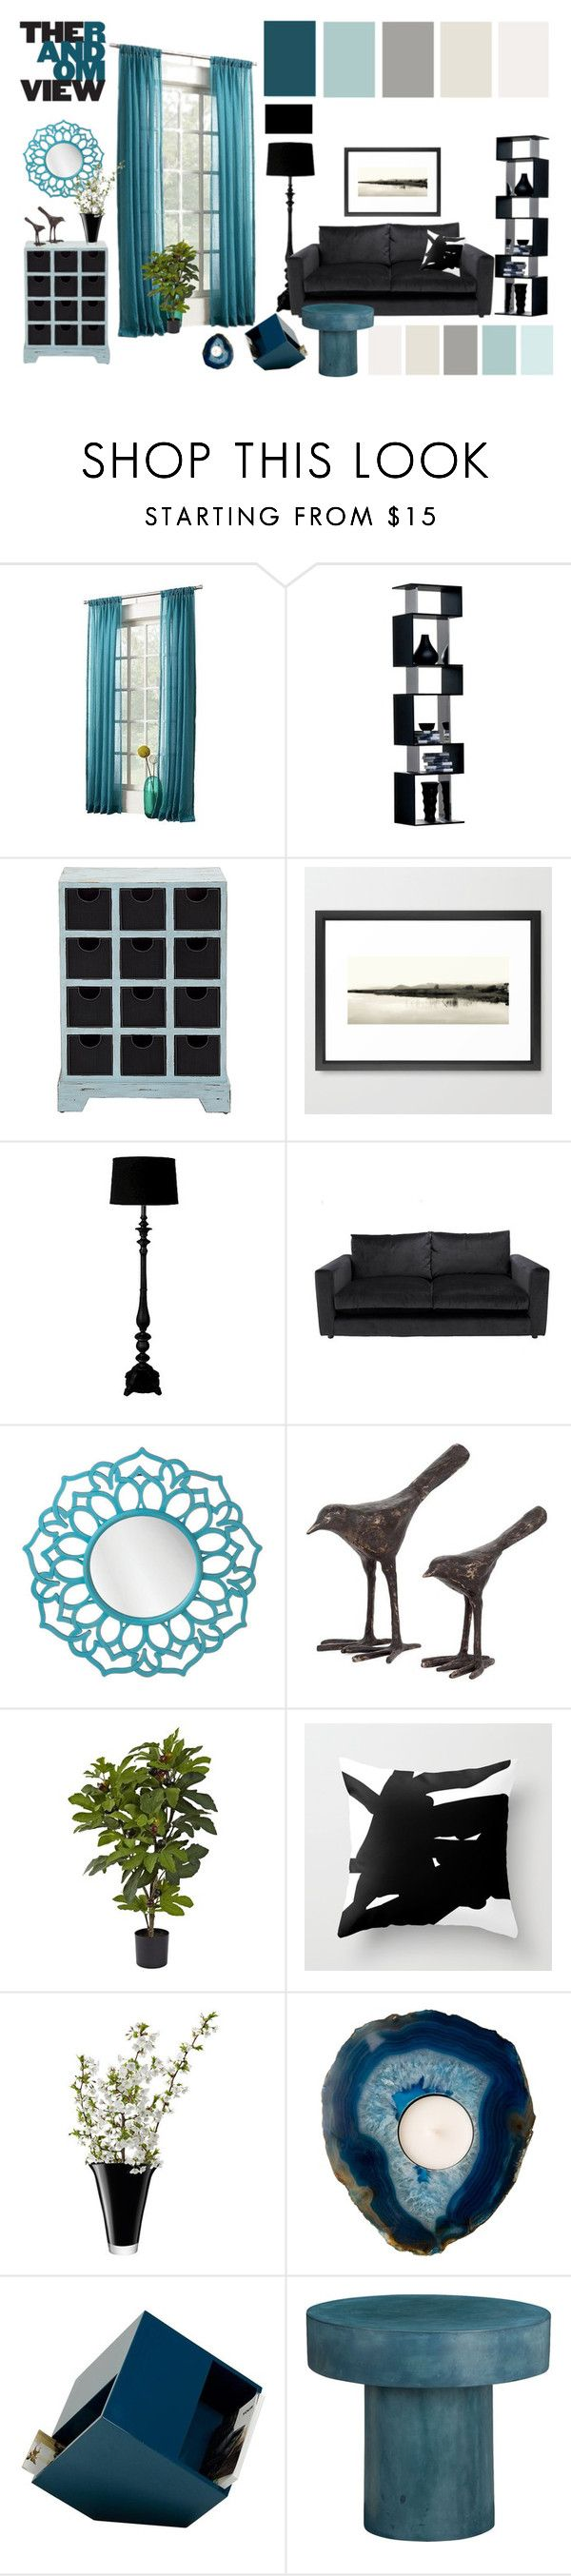 """""""teal vs black • living room"""" by by-jwp ❤ liked on Polyvore featuring interior, interiors, interior design, home, home decor, interior decorating, Sun Zero, Threshold, Dot & Bo and Nearly Natural"""